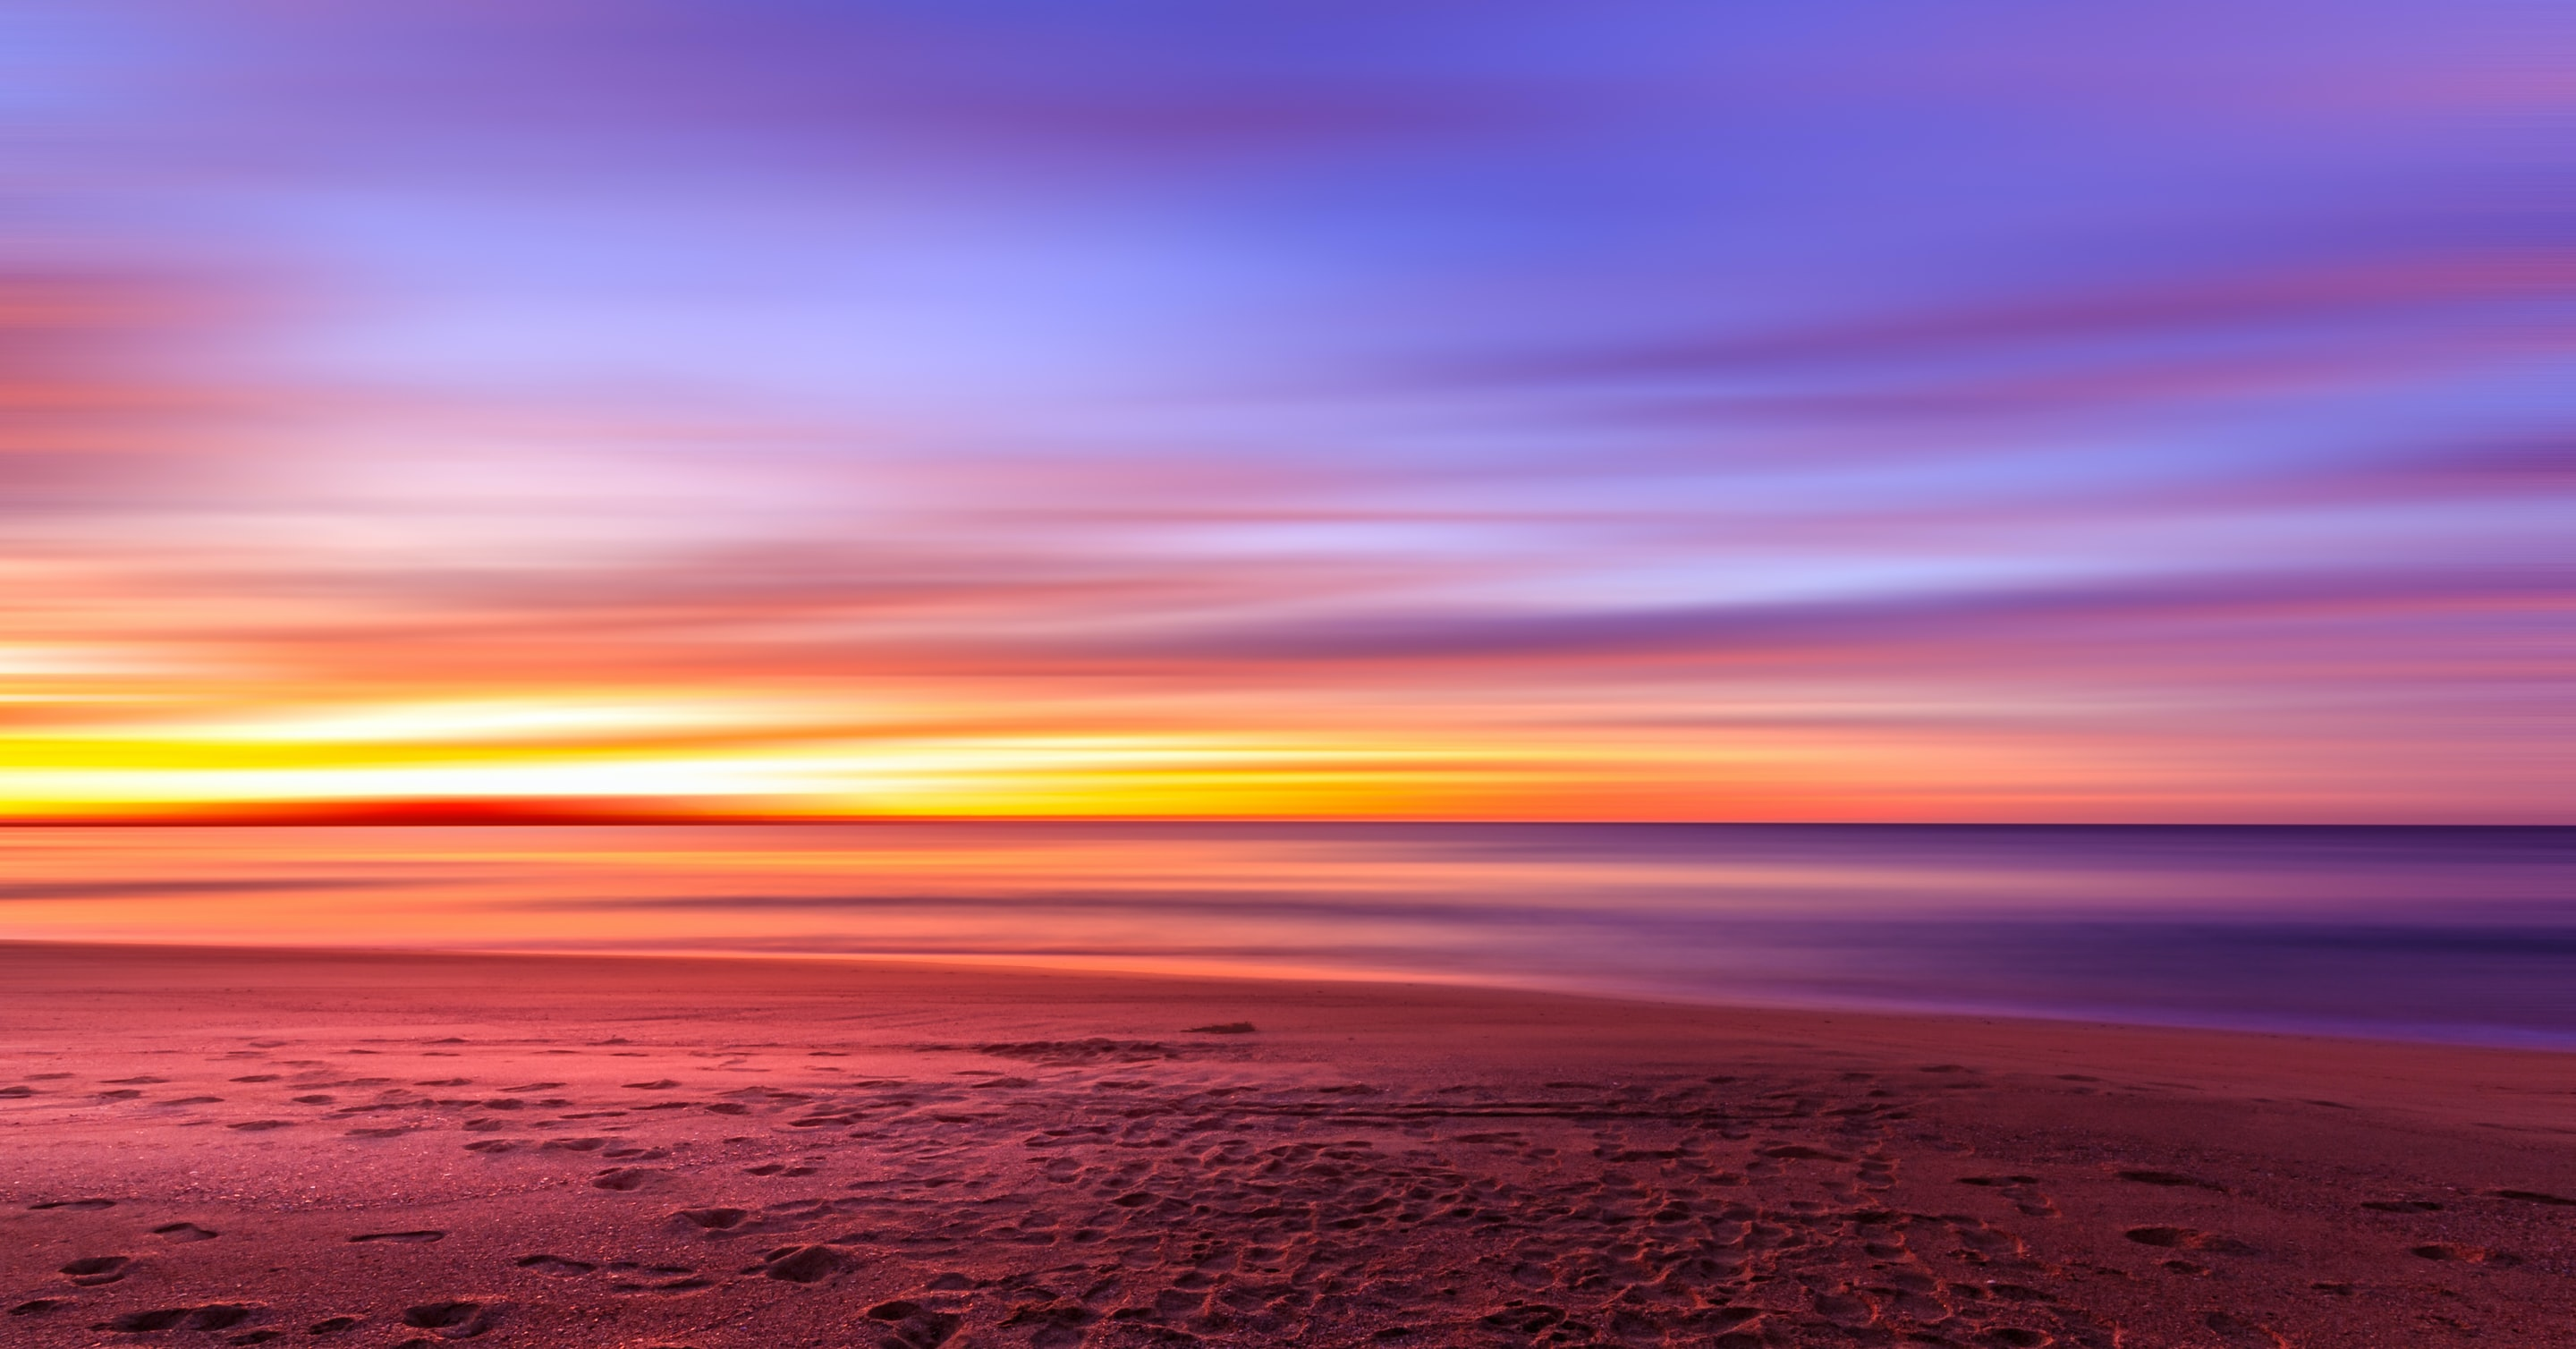 A beach with a scenic purple and orange sunset in New South Wales